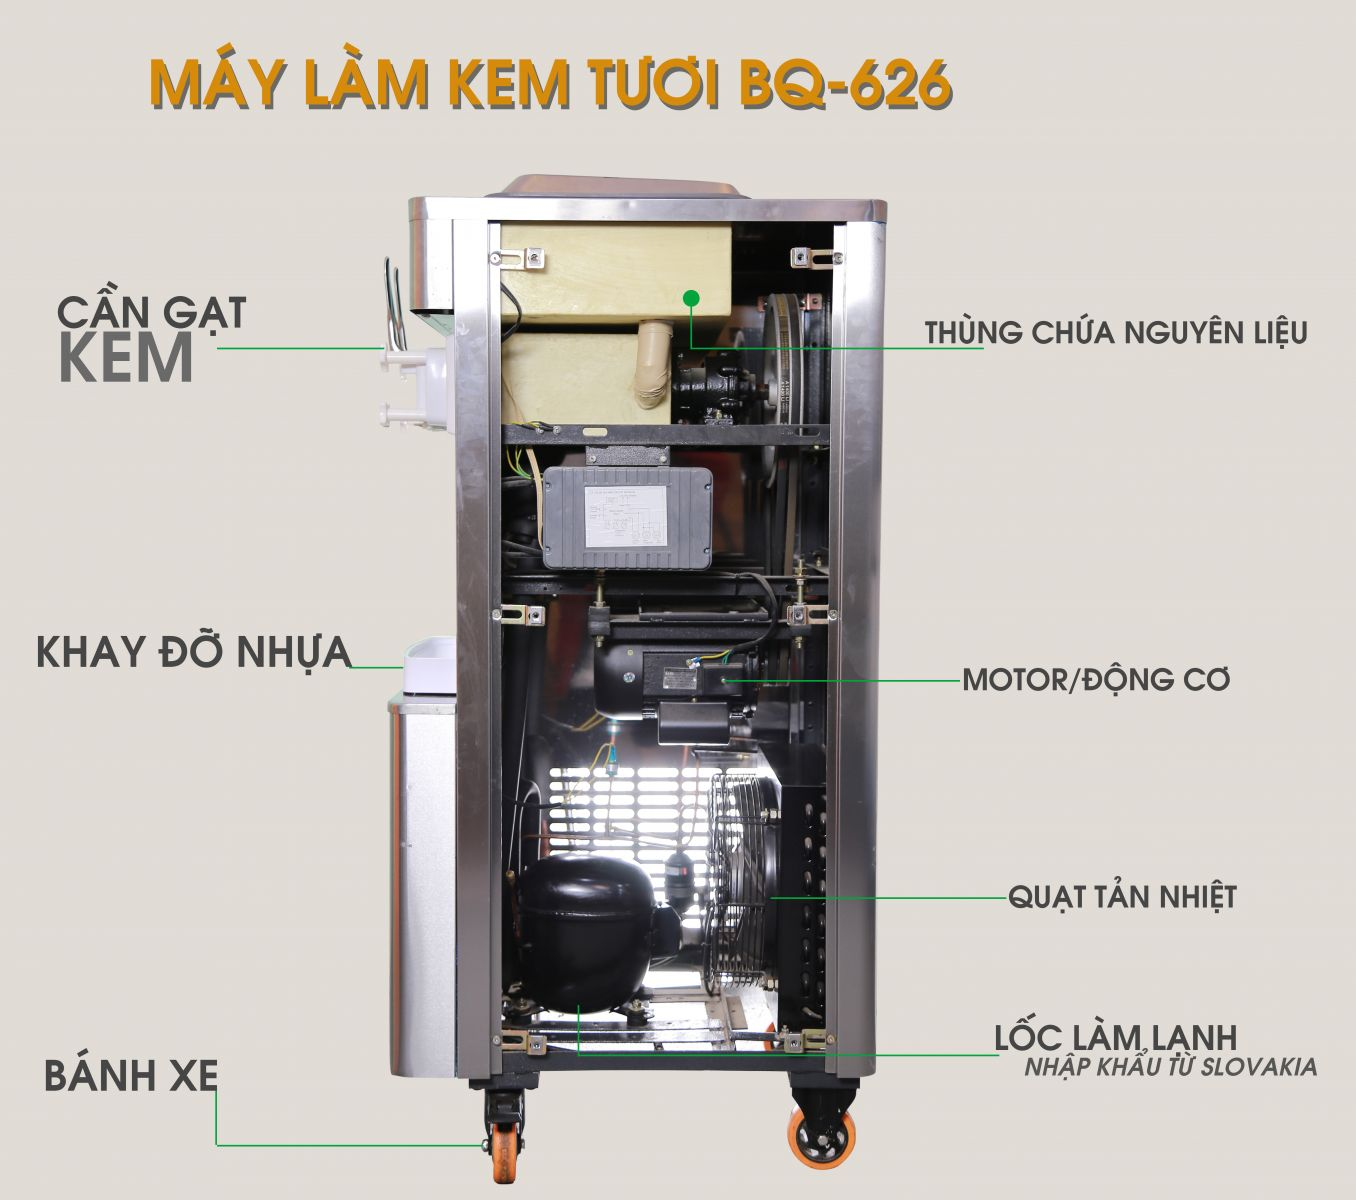 may-lam-kem-bq-626